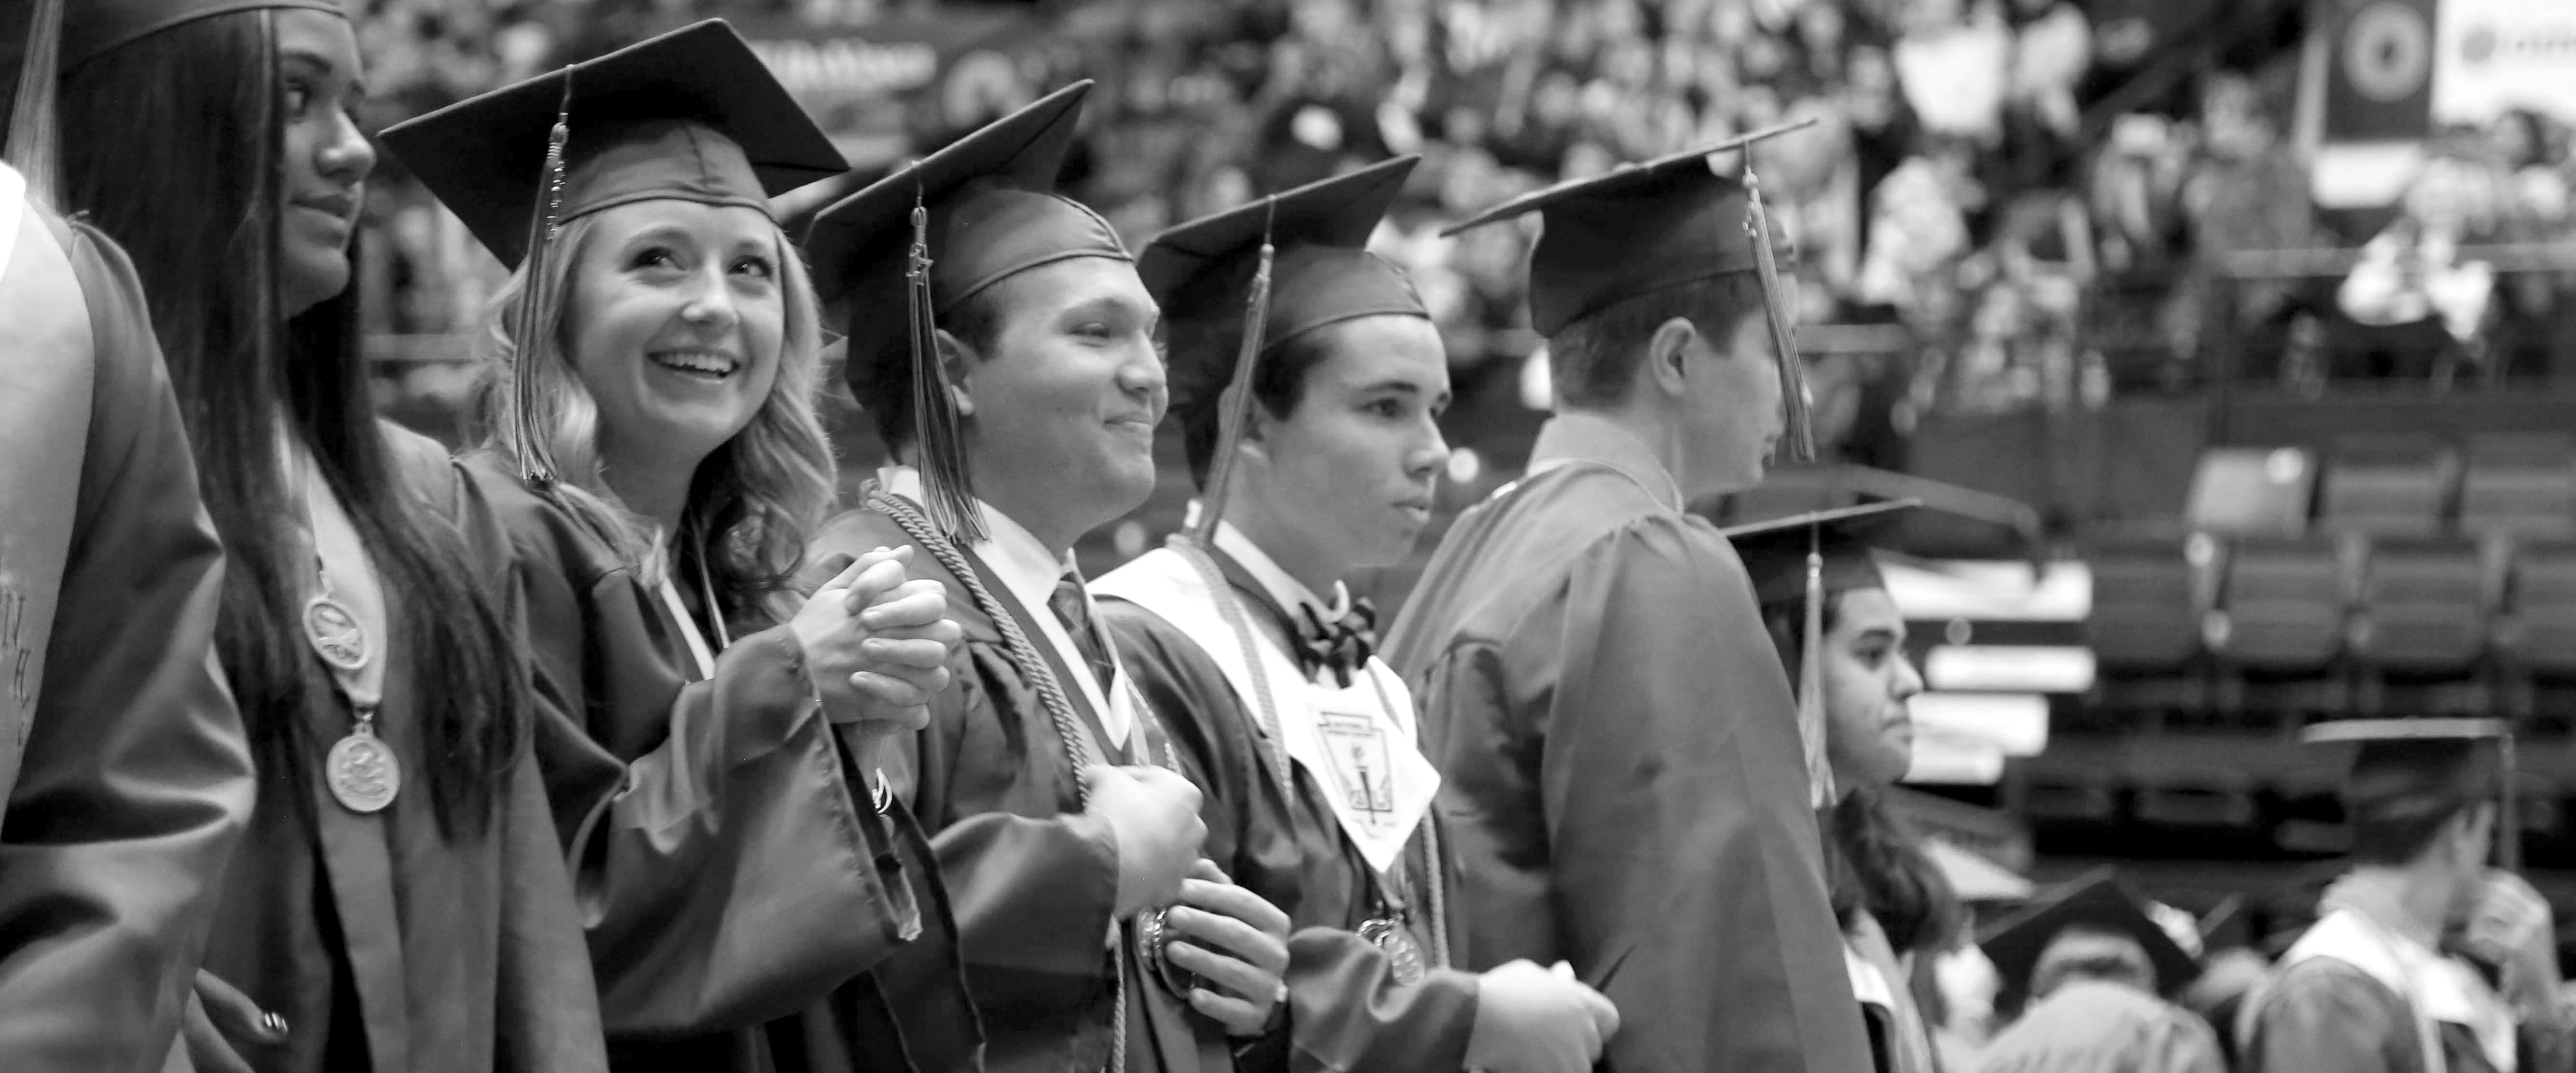 High school seniors in caps and gowns smiling before graduation